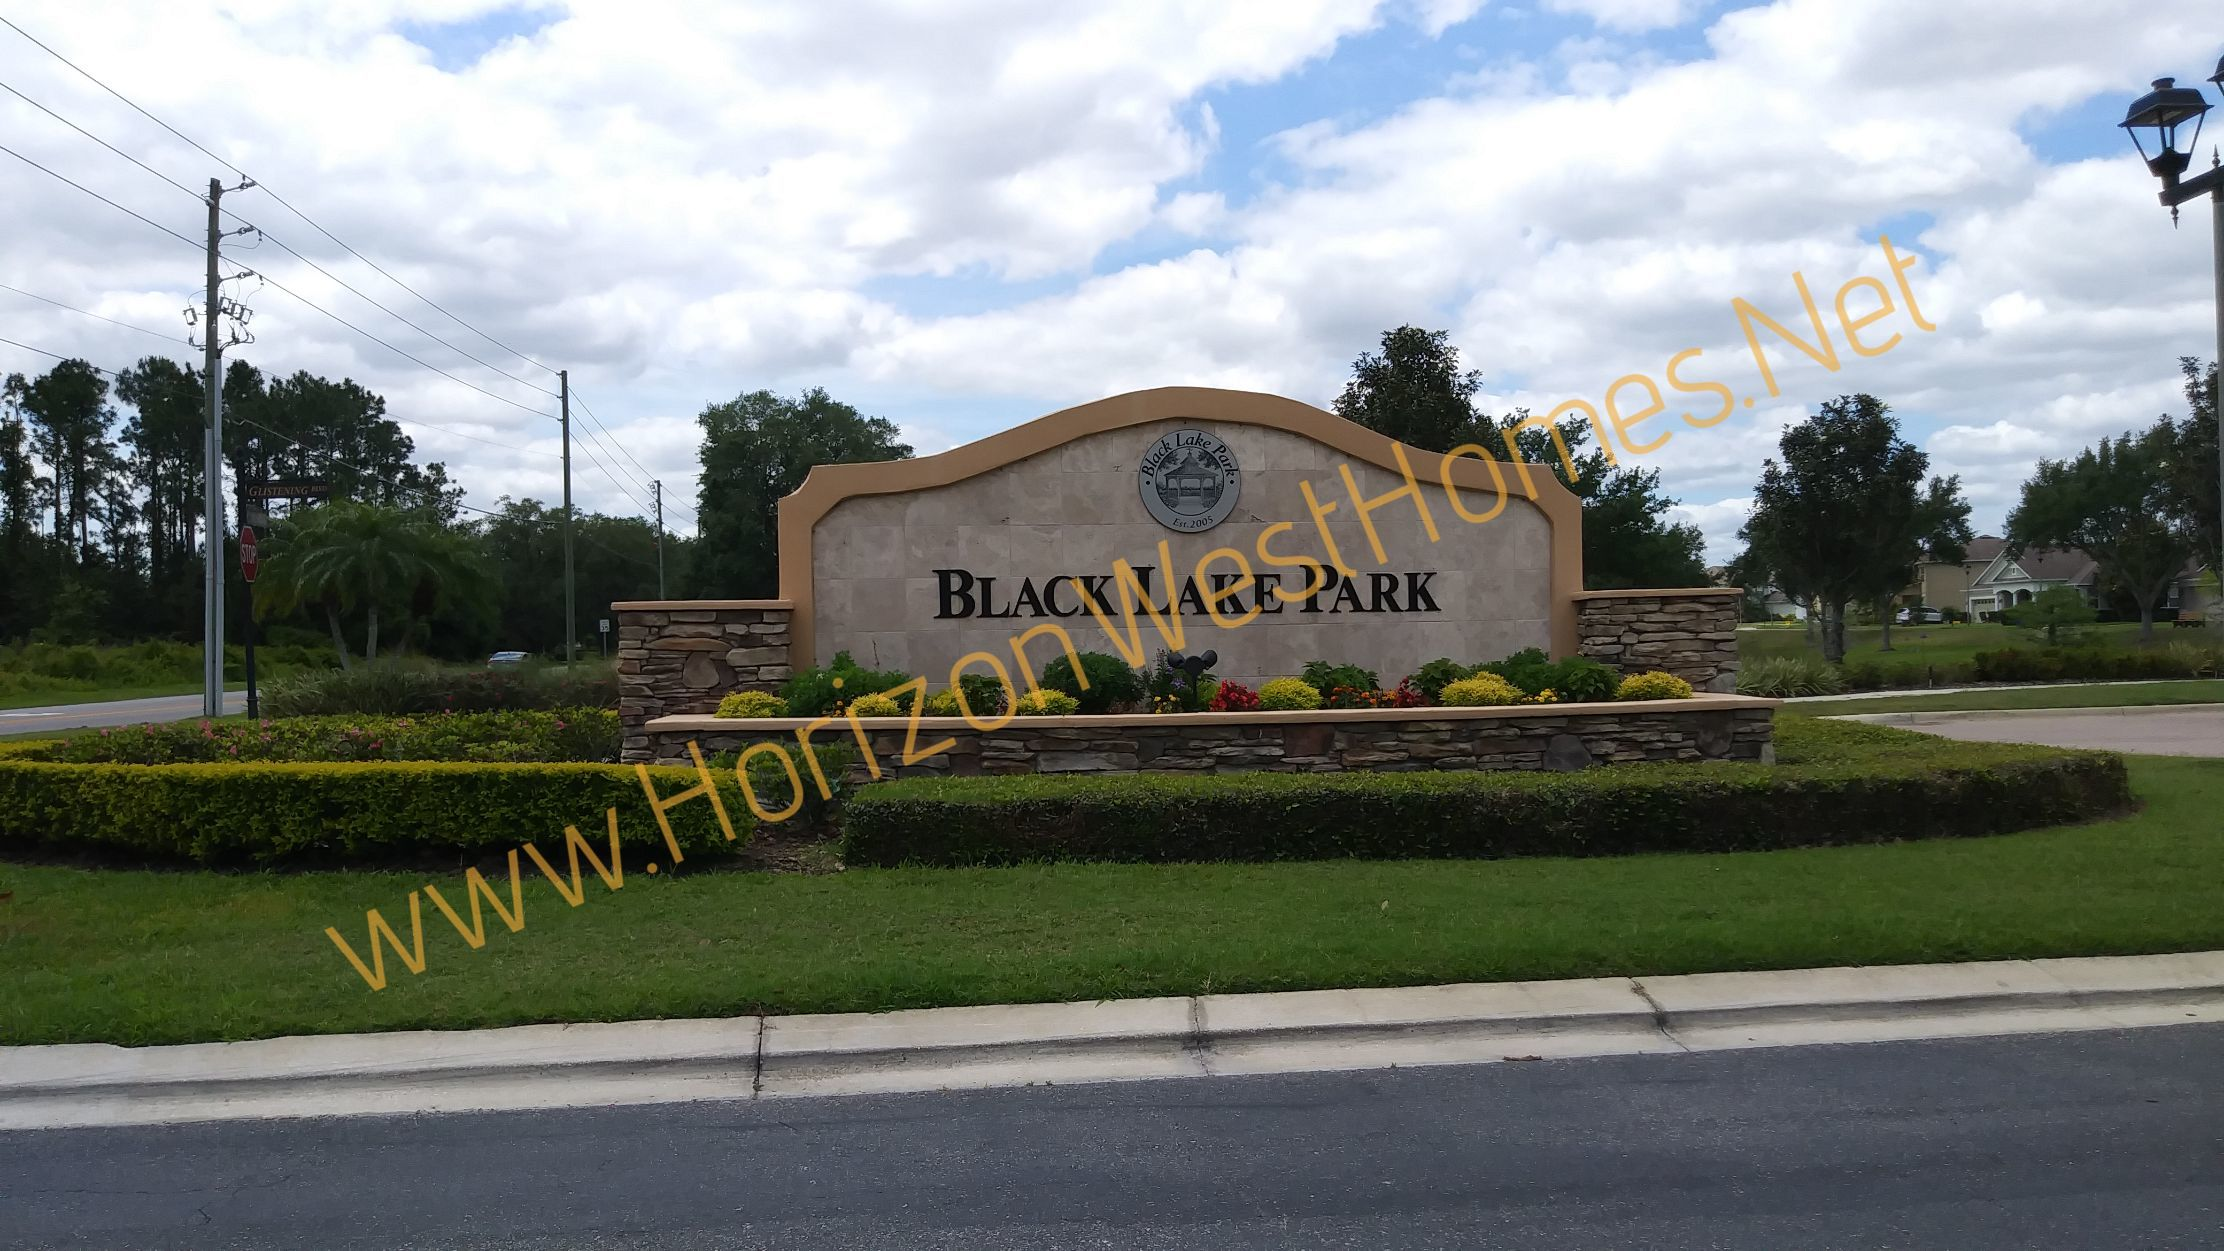 Black Lake Park. homes for sale Winter Garden Florida Entrance Sign. Real estate. gated community